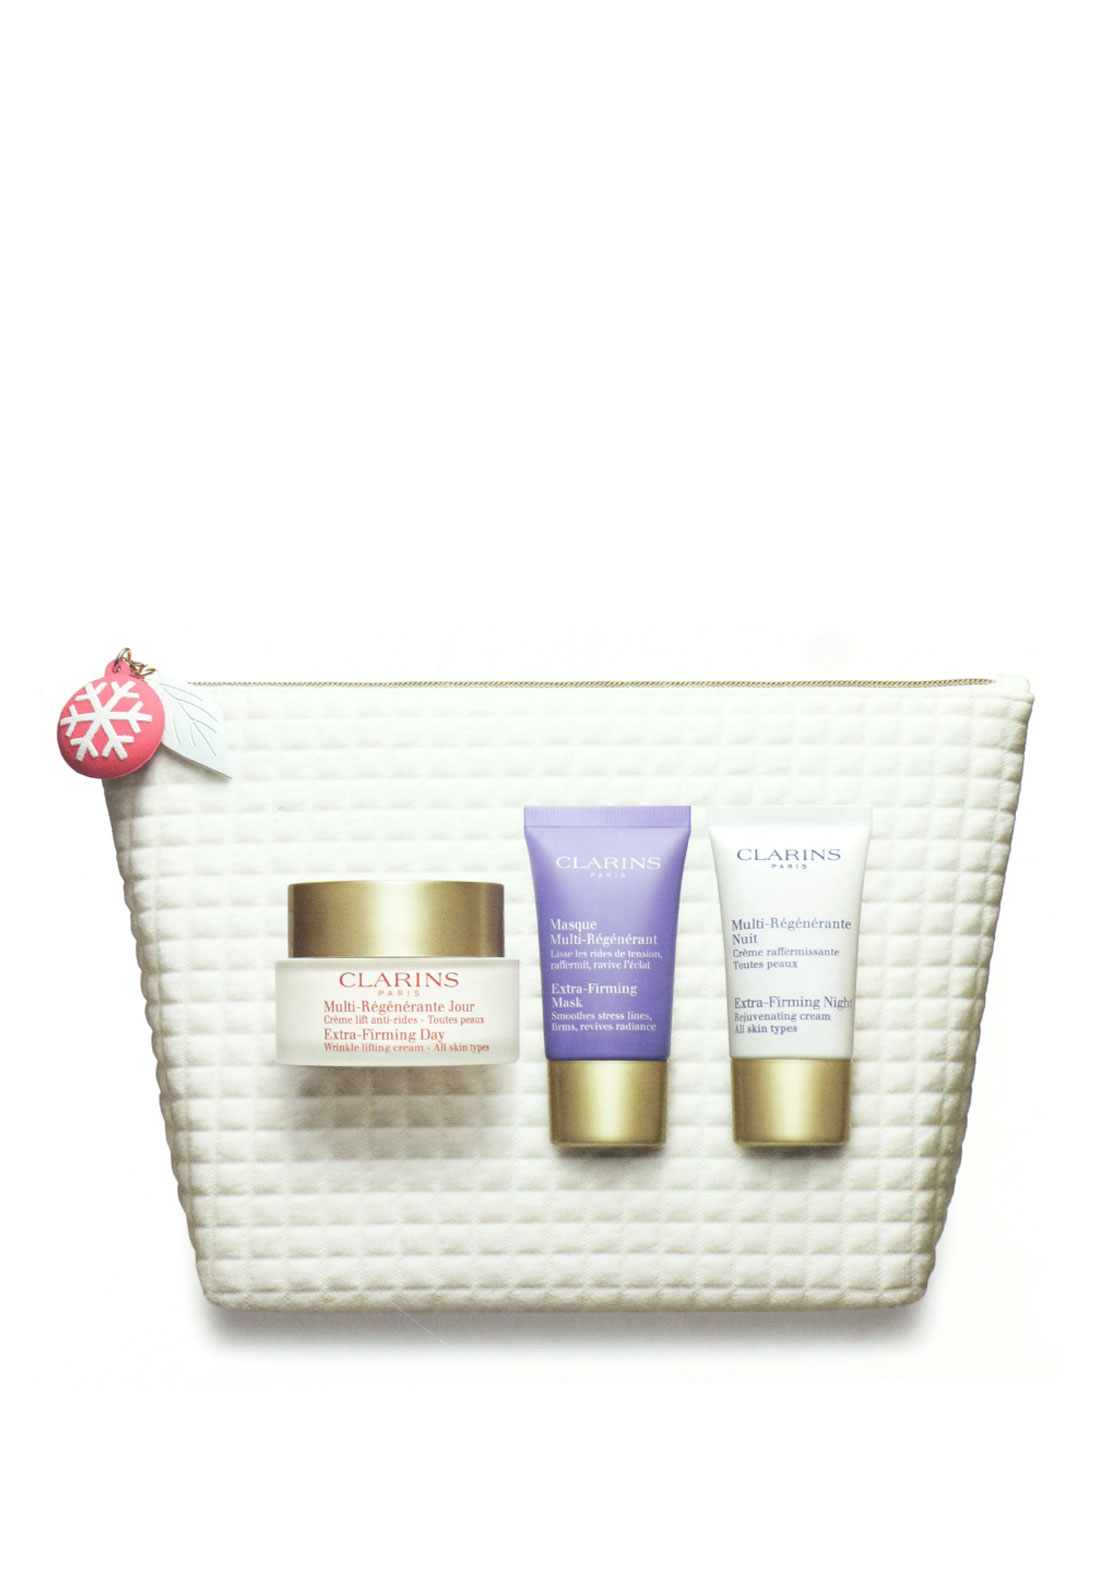 Clarins 'Lifting and Firming Essentials' Gift Set